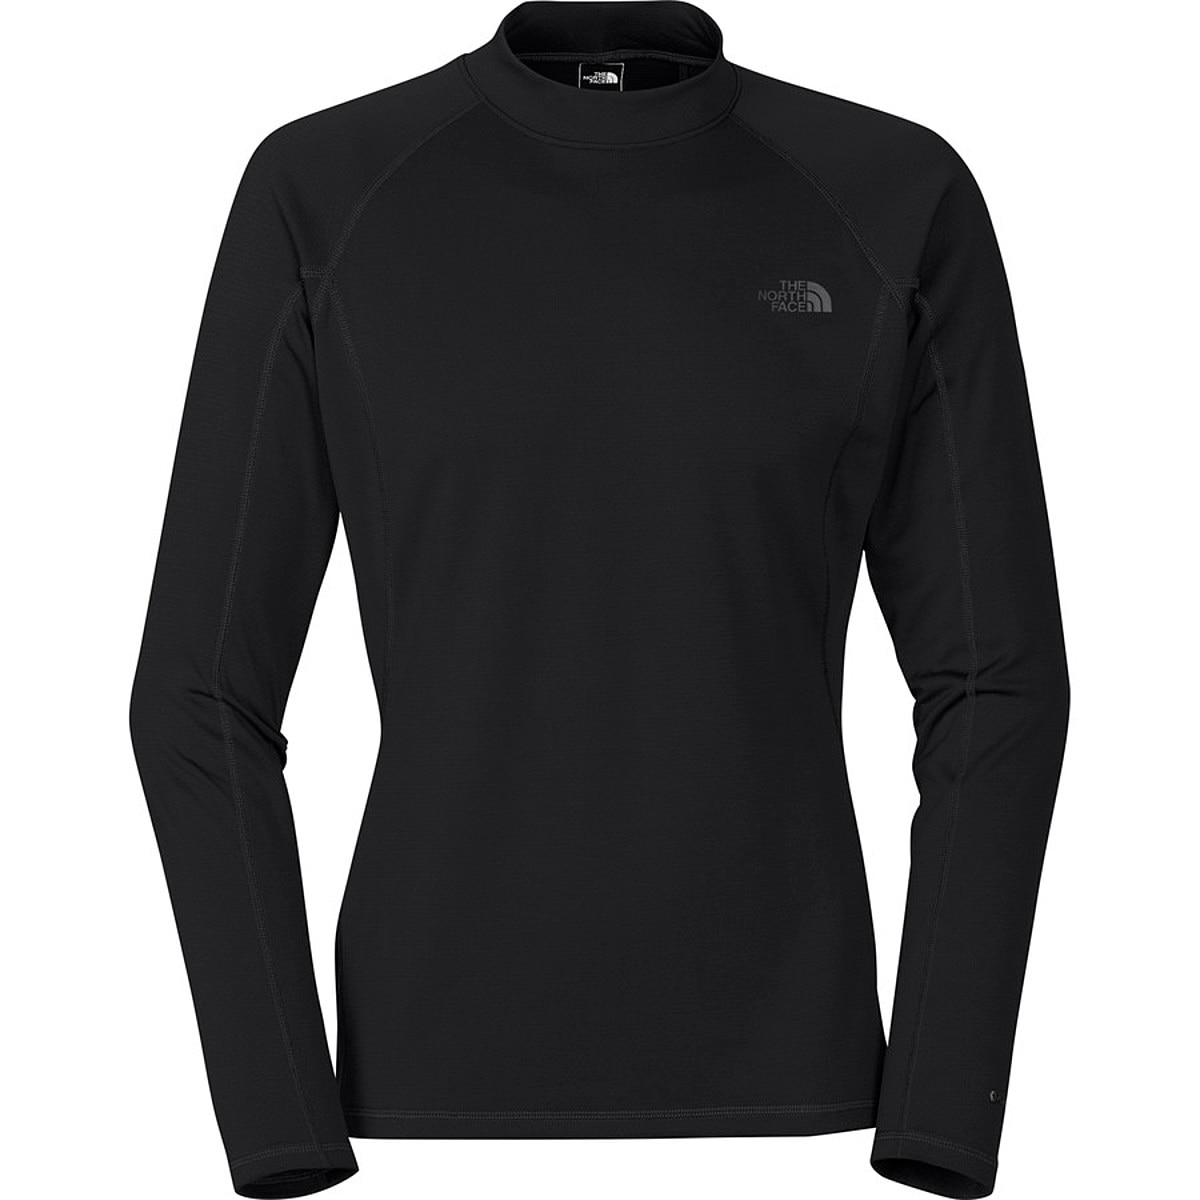 photo: The North Face Men's Warm Long-Sleeve Mock Neck